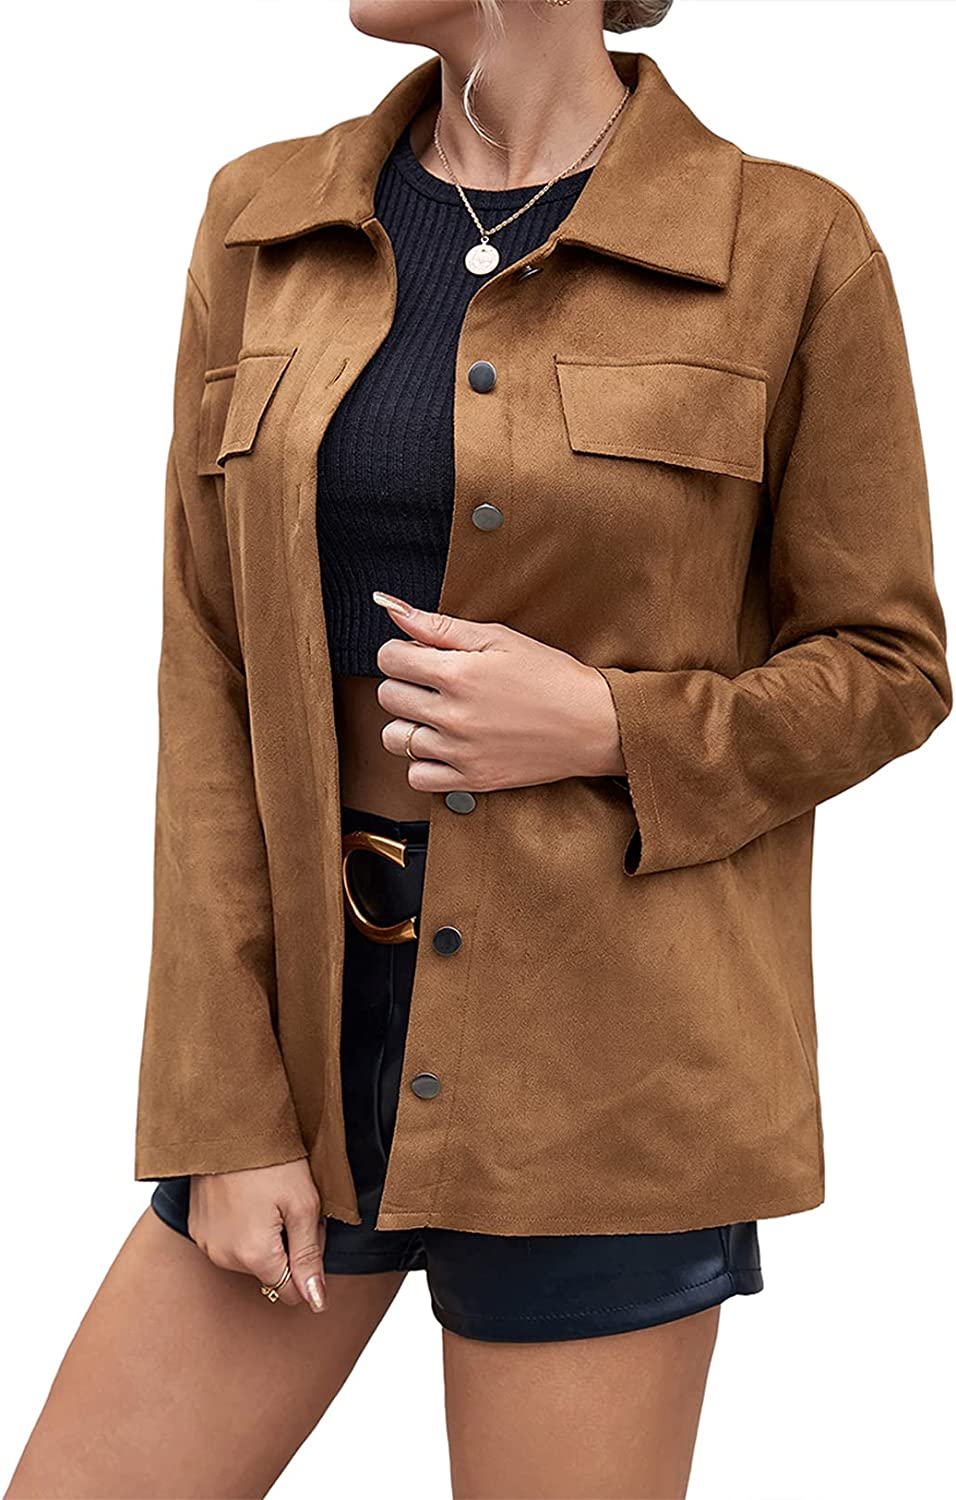 Women's Faux Suede Leather Jacket Simple Max 61% OFF Long Ranking TOP19 Lapel Button Down